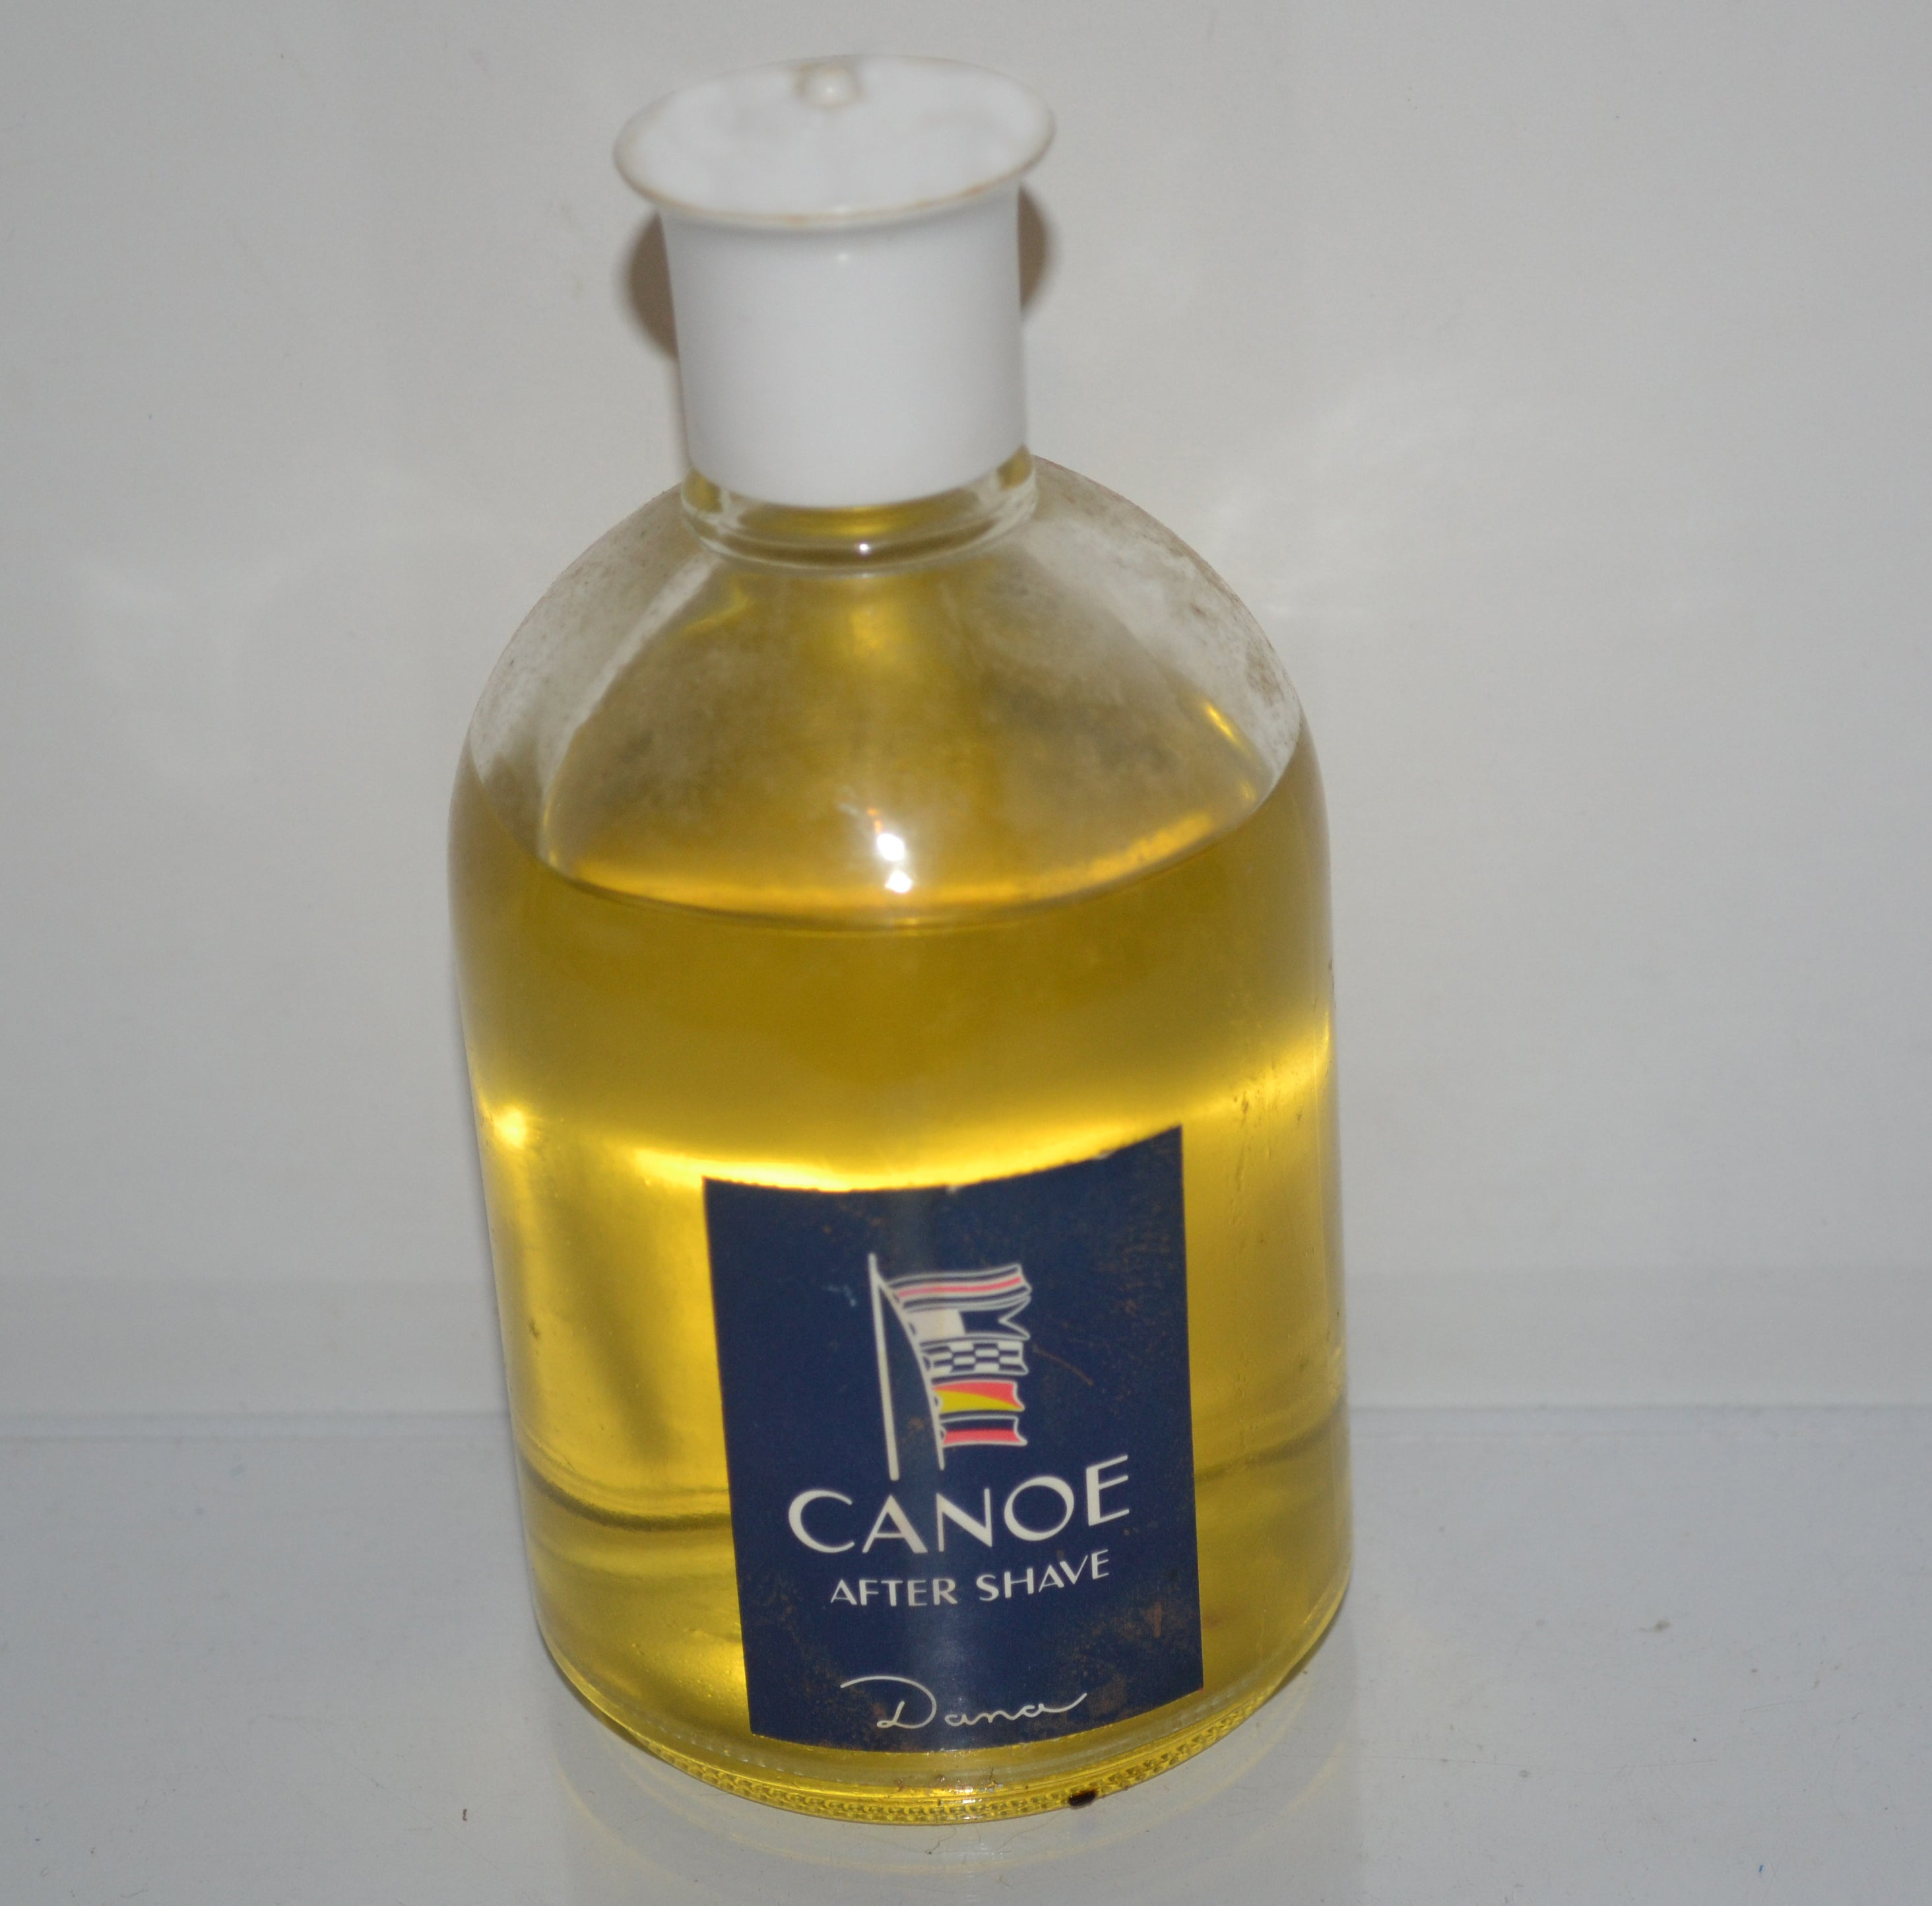 Canoe After Shave By Dana